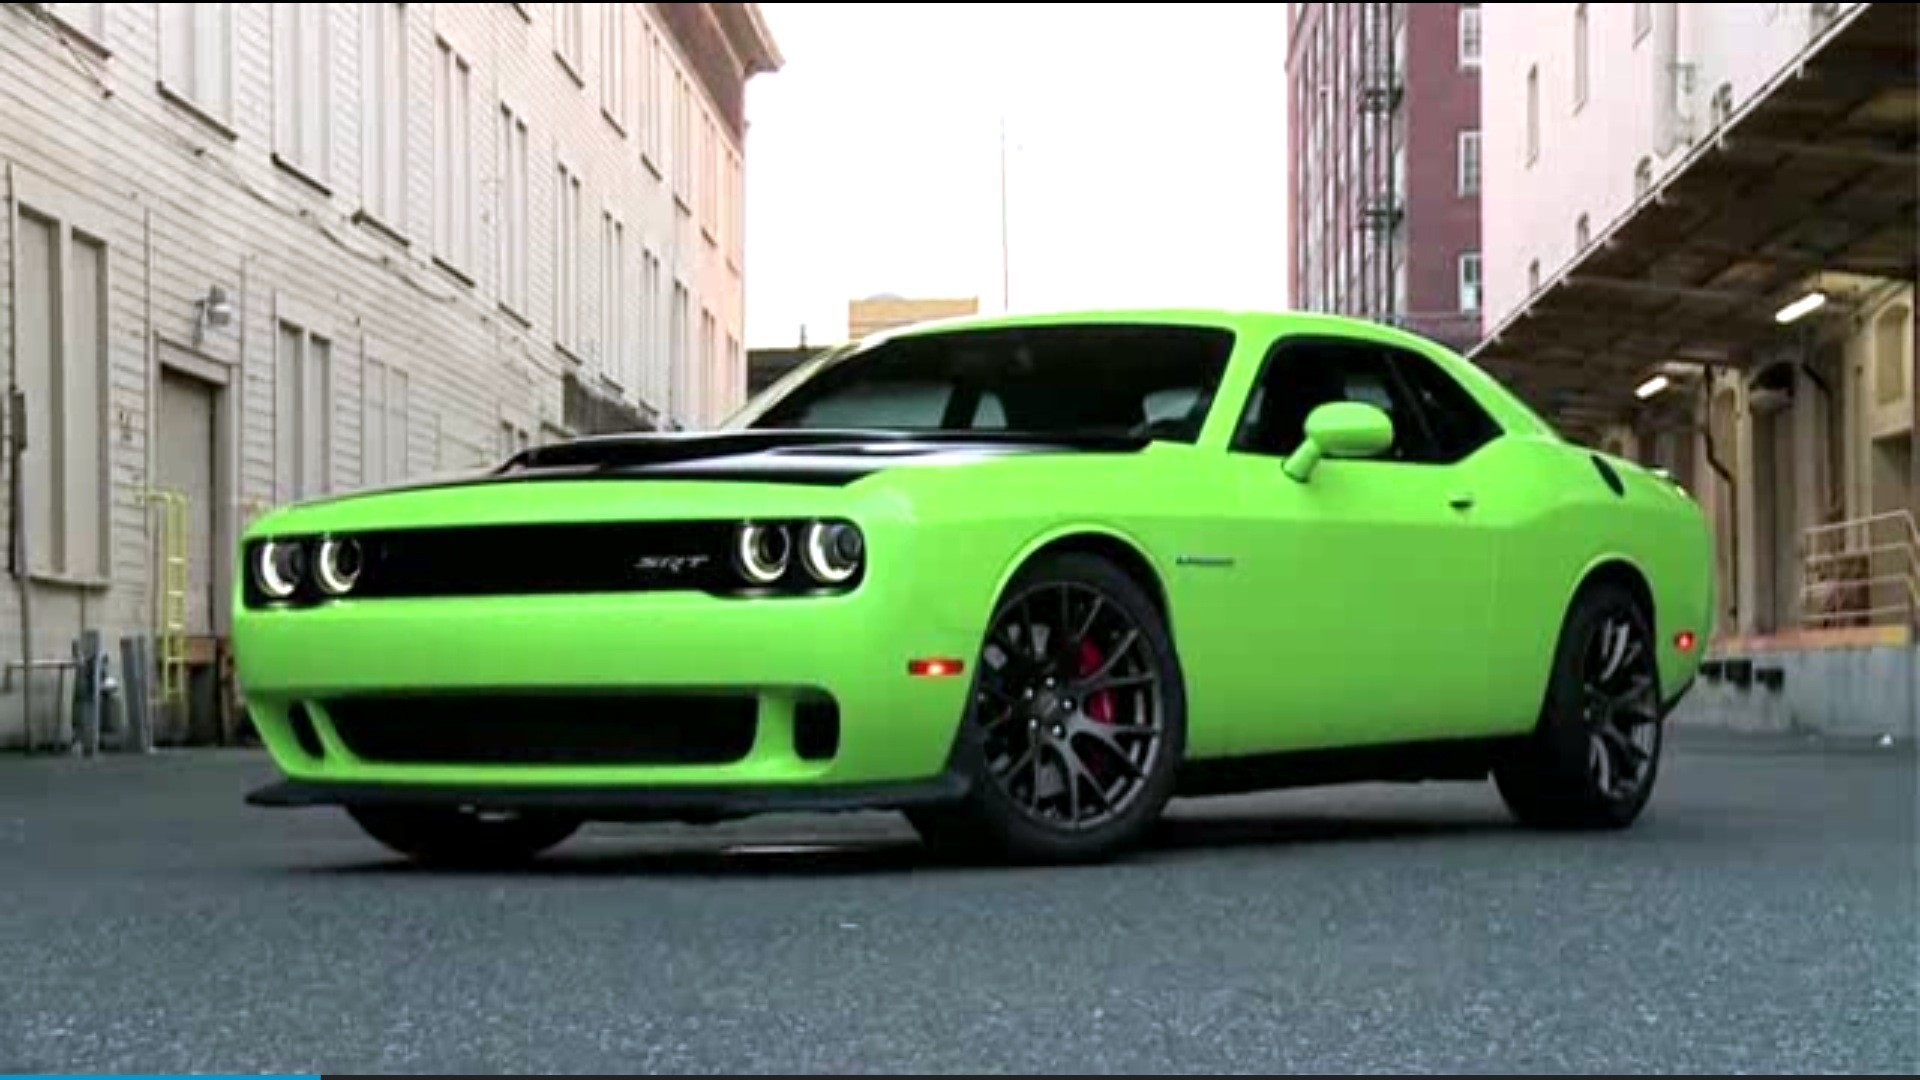 2015 Dodge Challenger SRT Hellcat first drive - Chicago Tribune